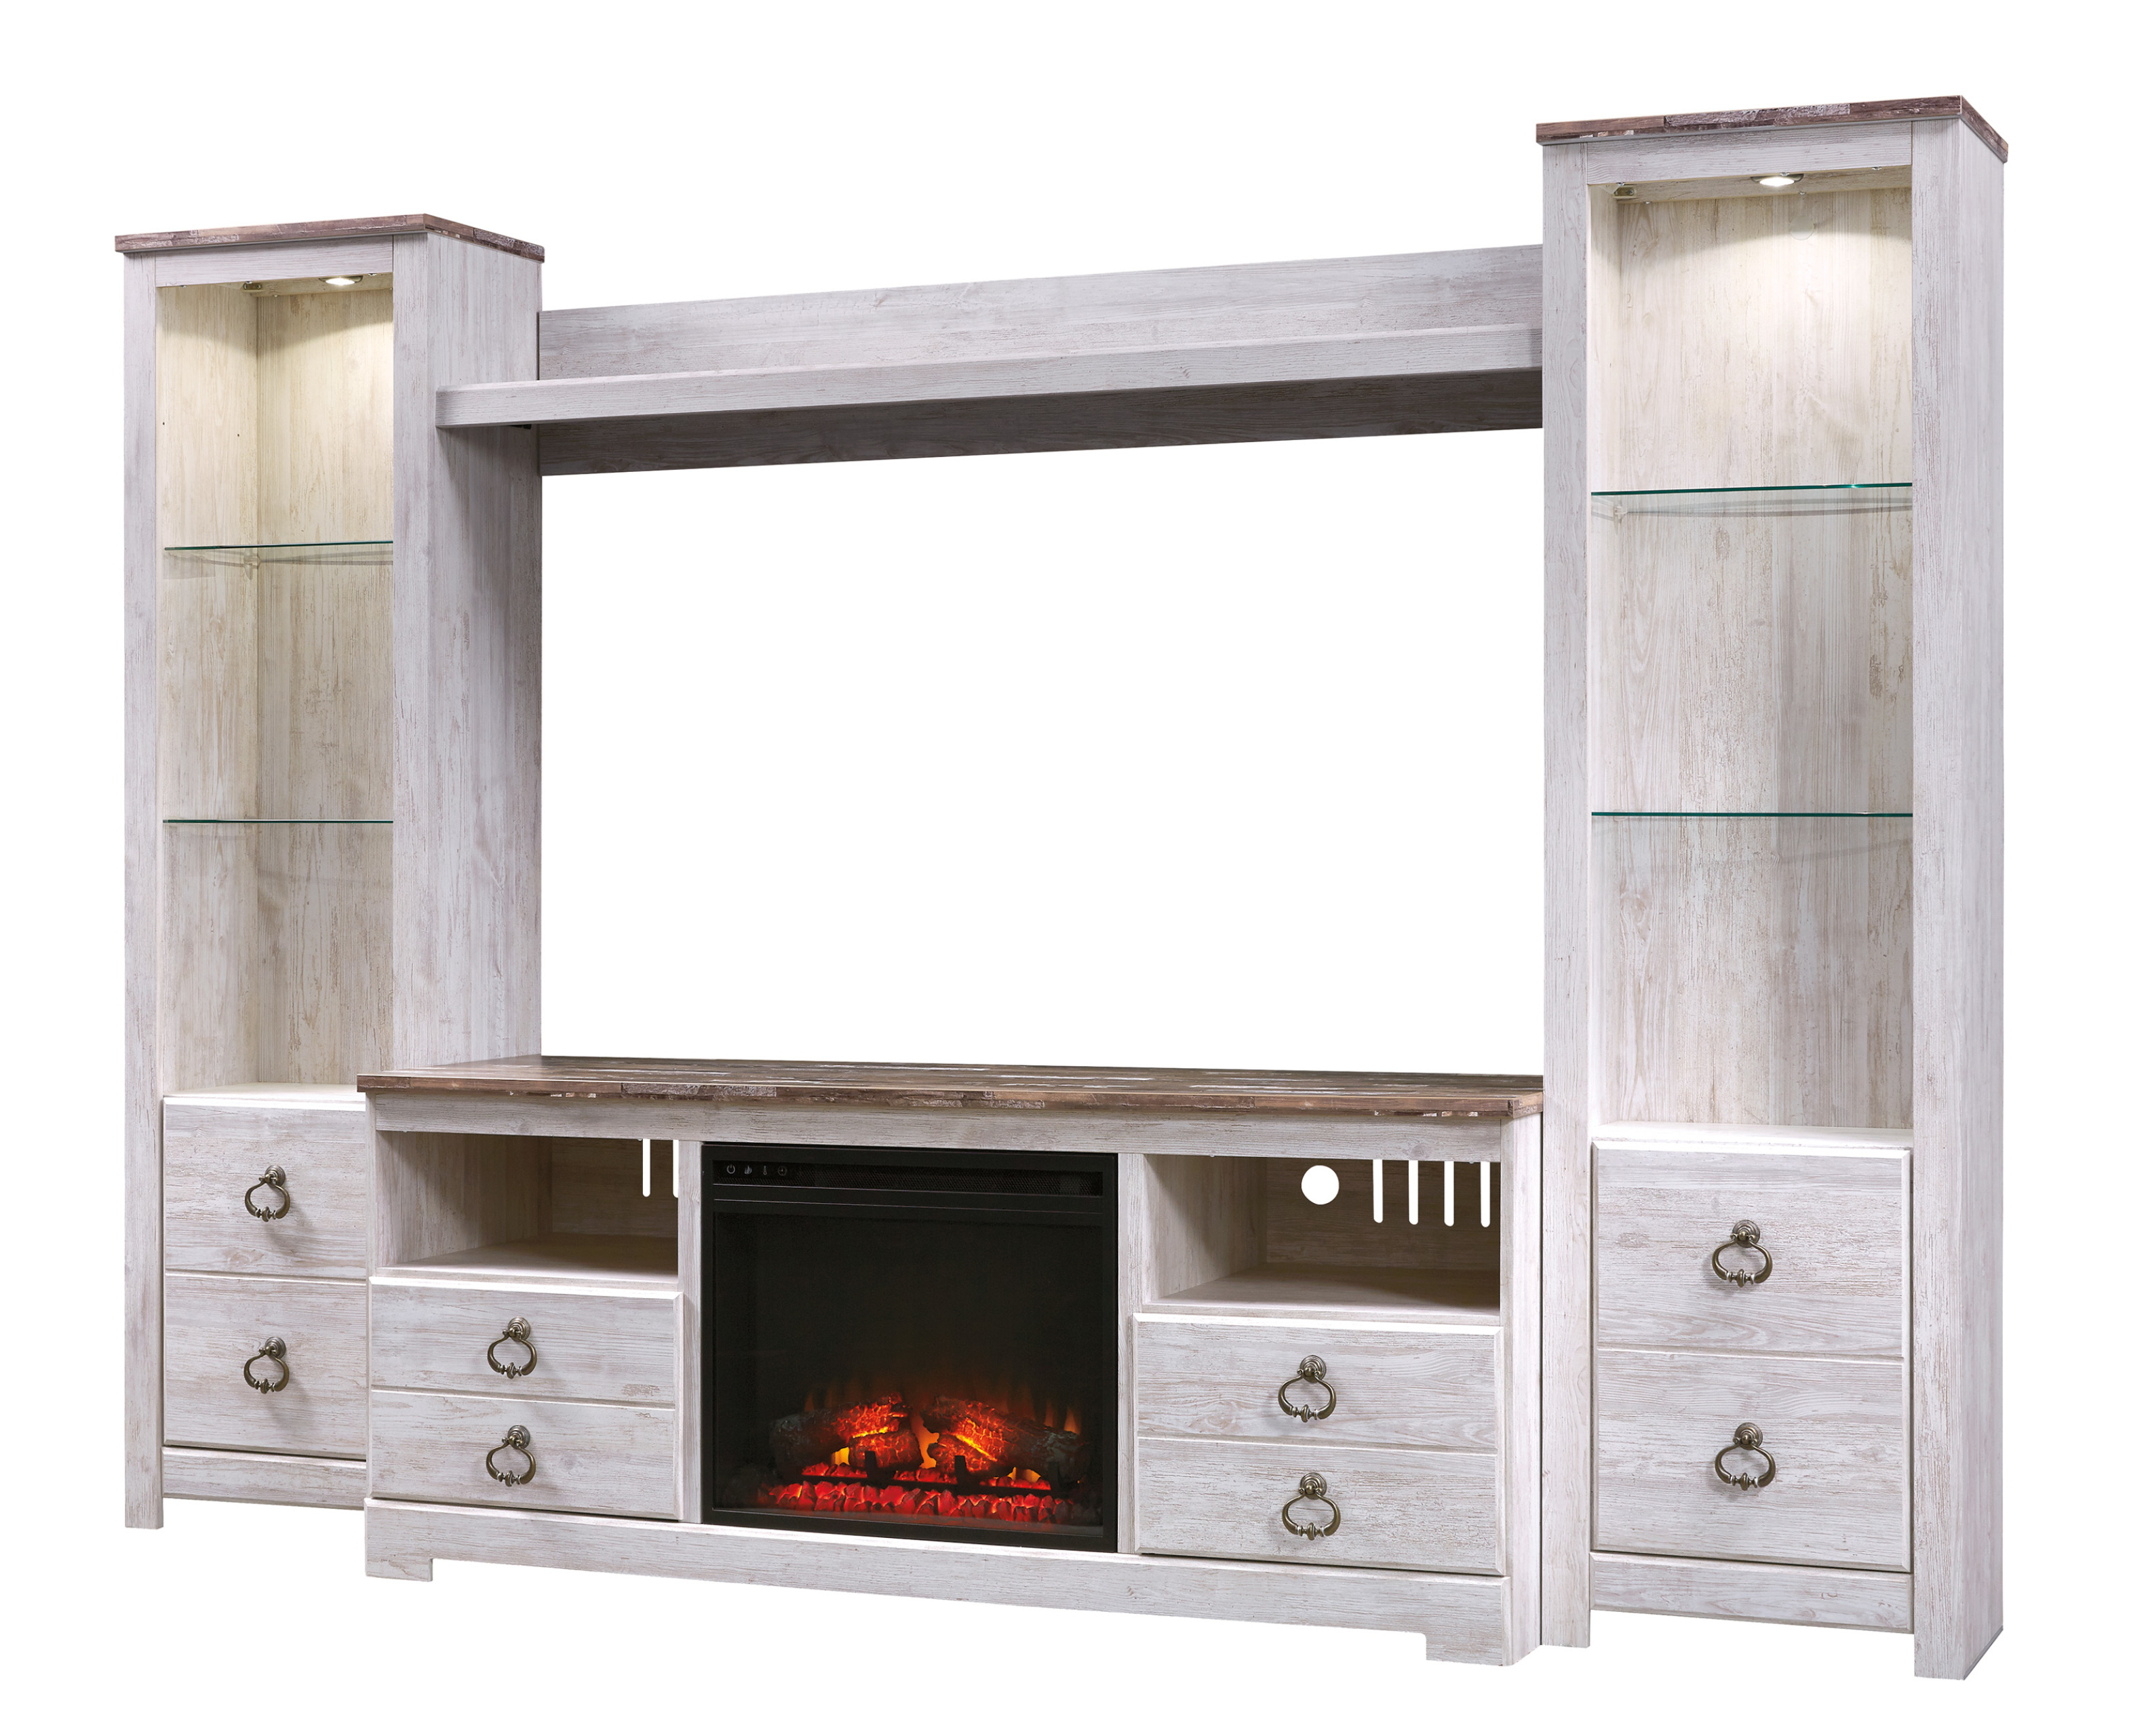 Well Liked Ashley Signature Willowton W267 Tv Stand / Wall Unit In Tv Stand Wall Units (View 18 of 20)